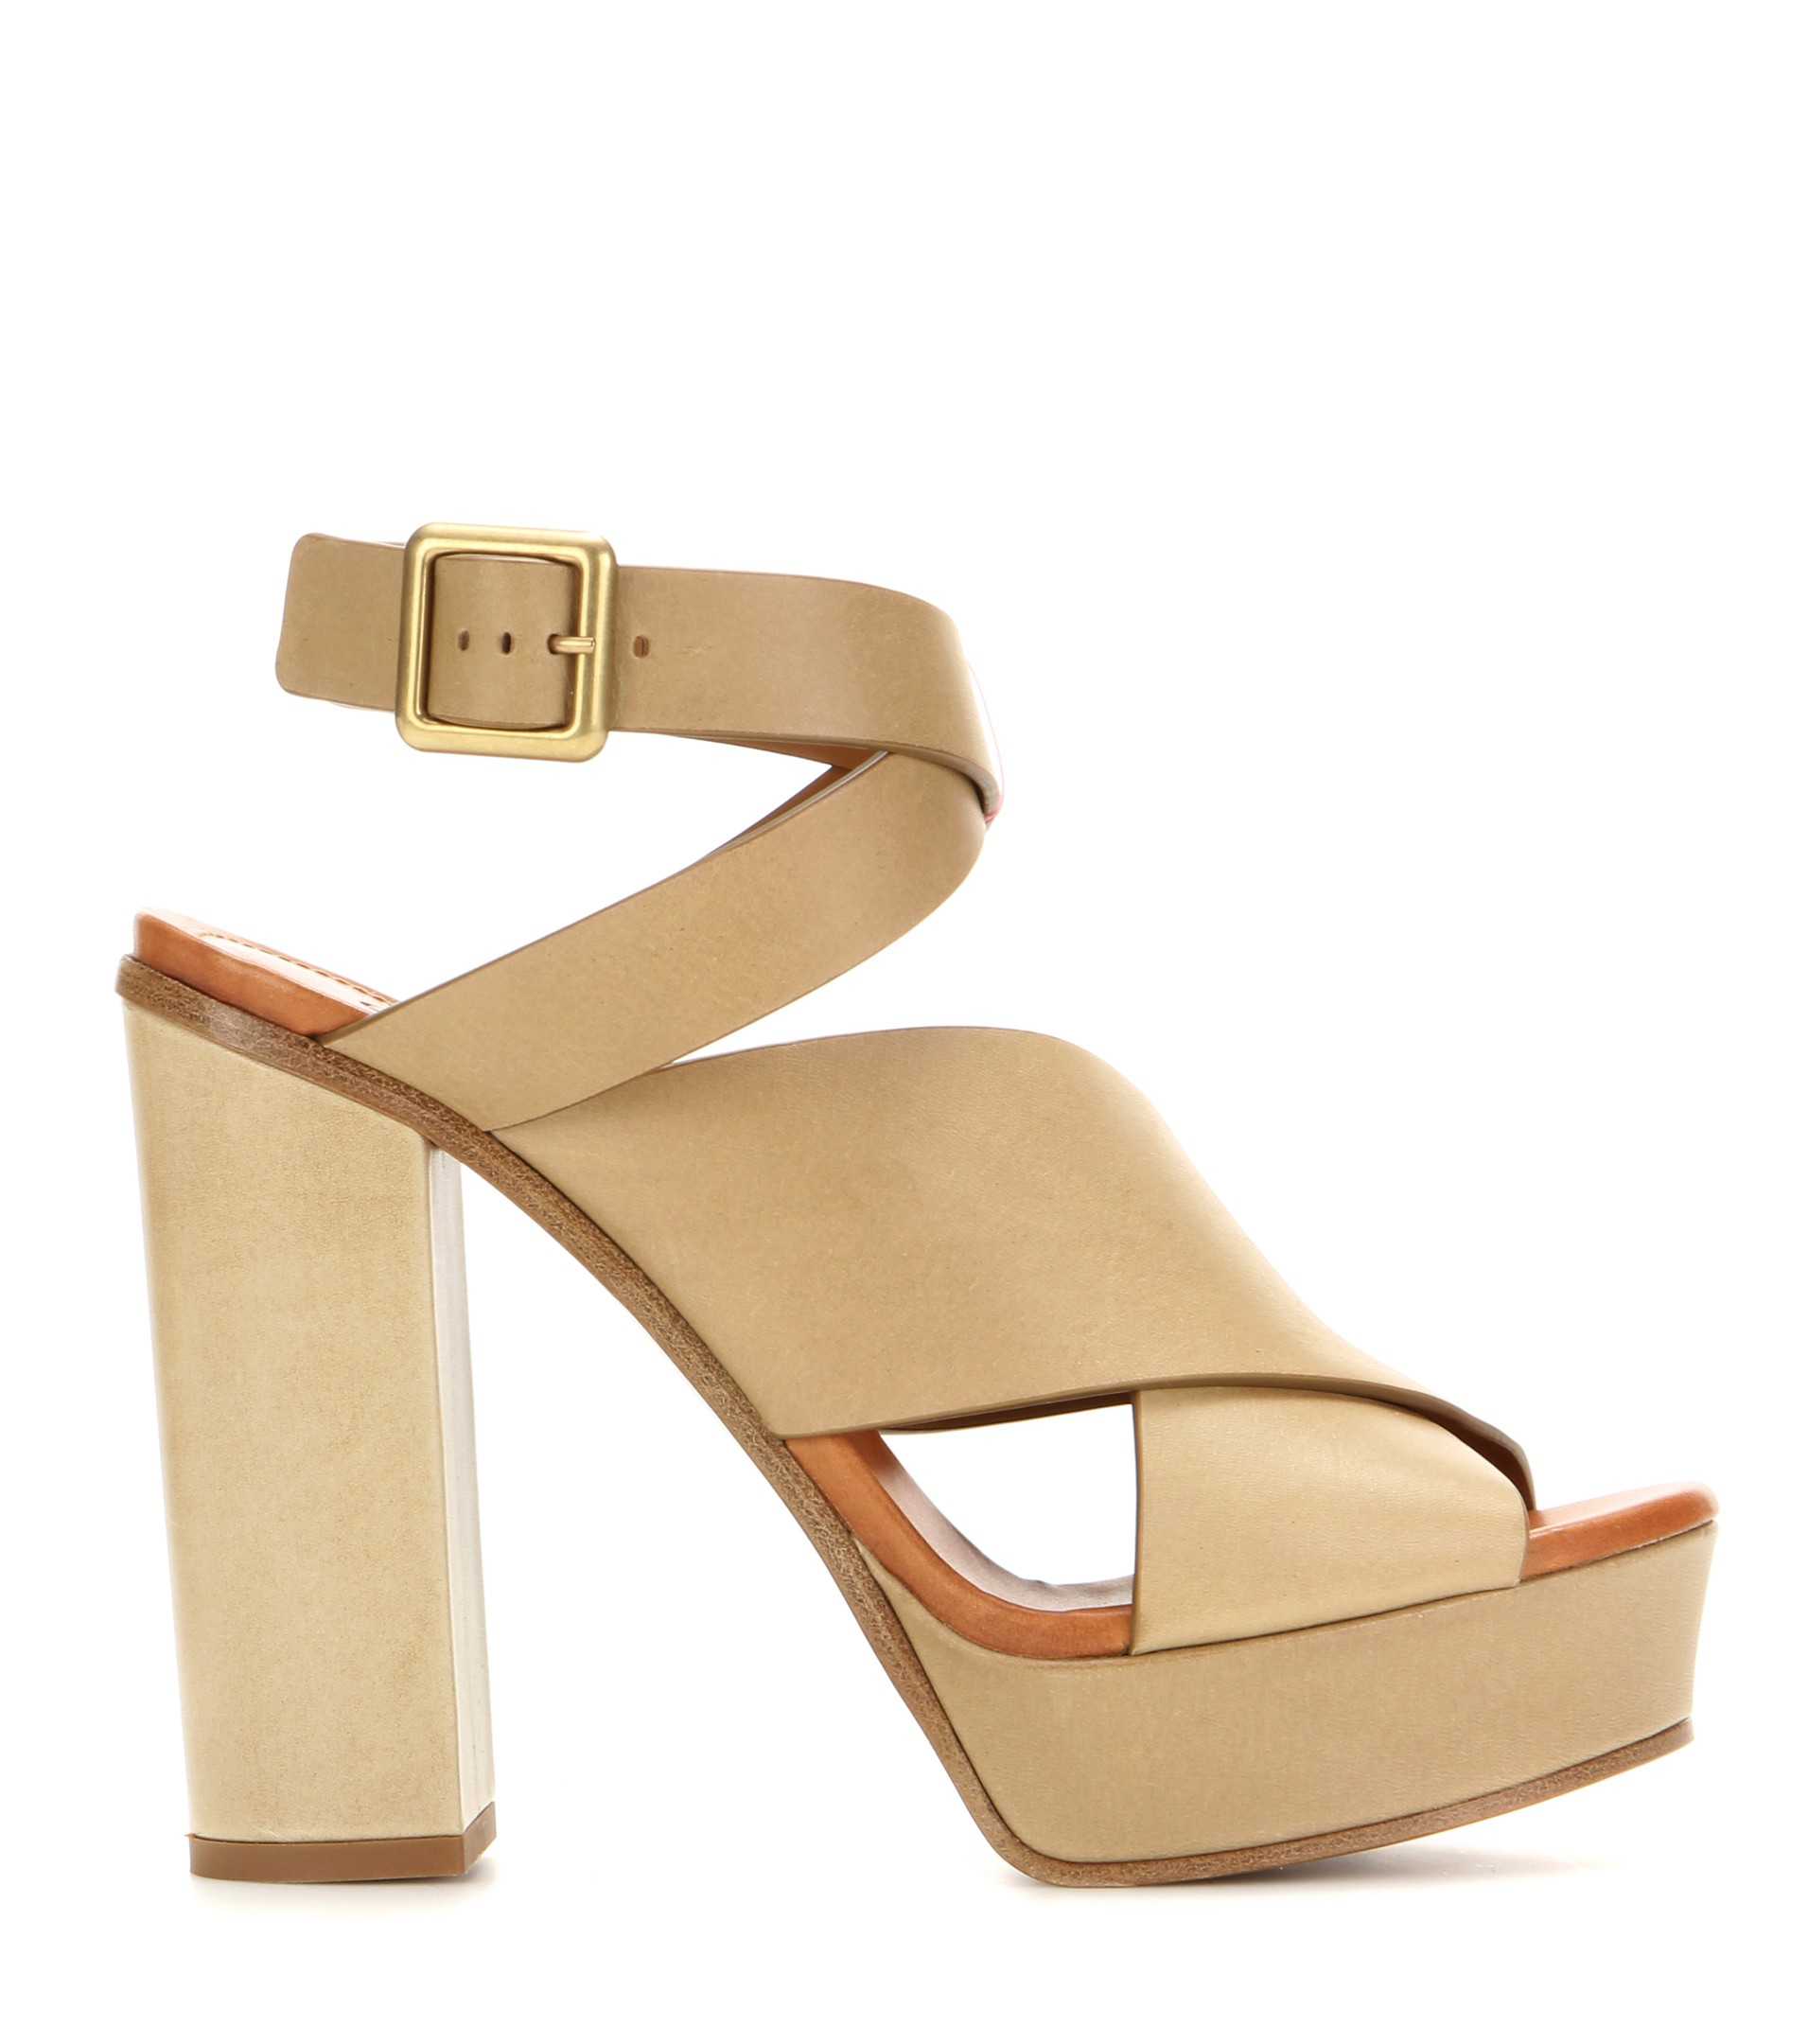 lowest price sale online clearance buy Chloé Leather Platform Pumps eO6I8mo